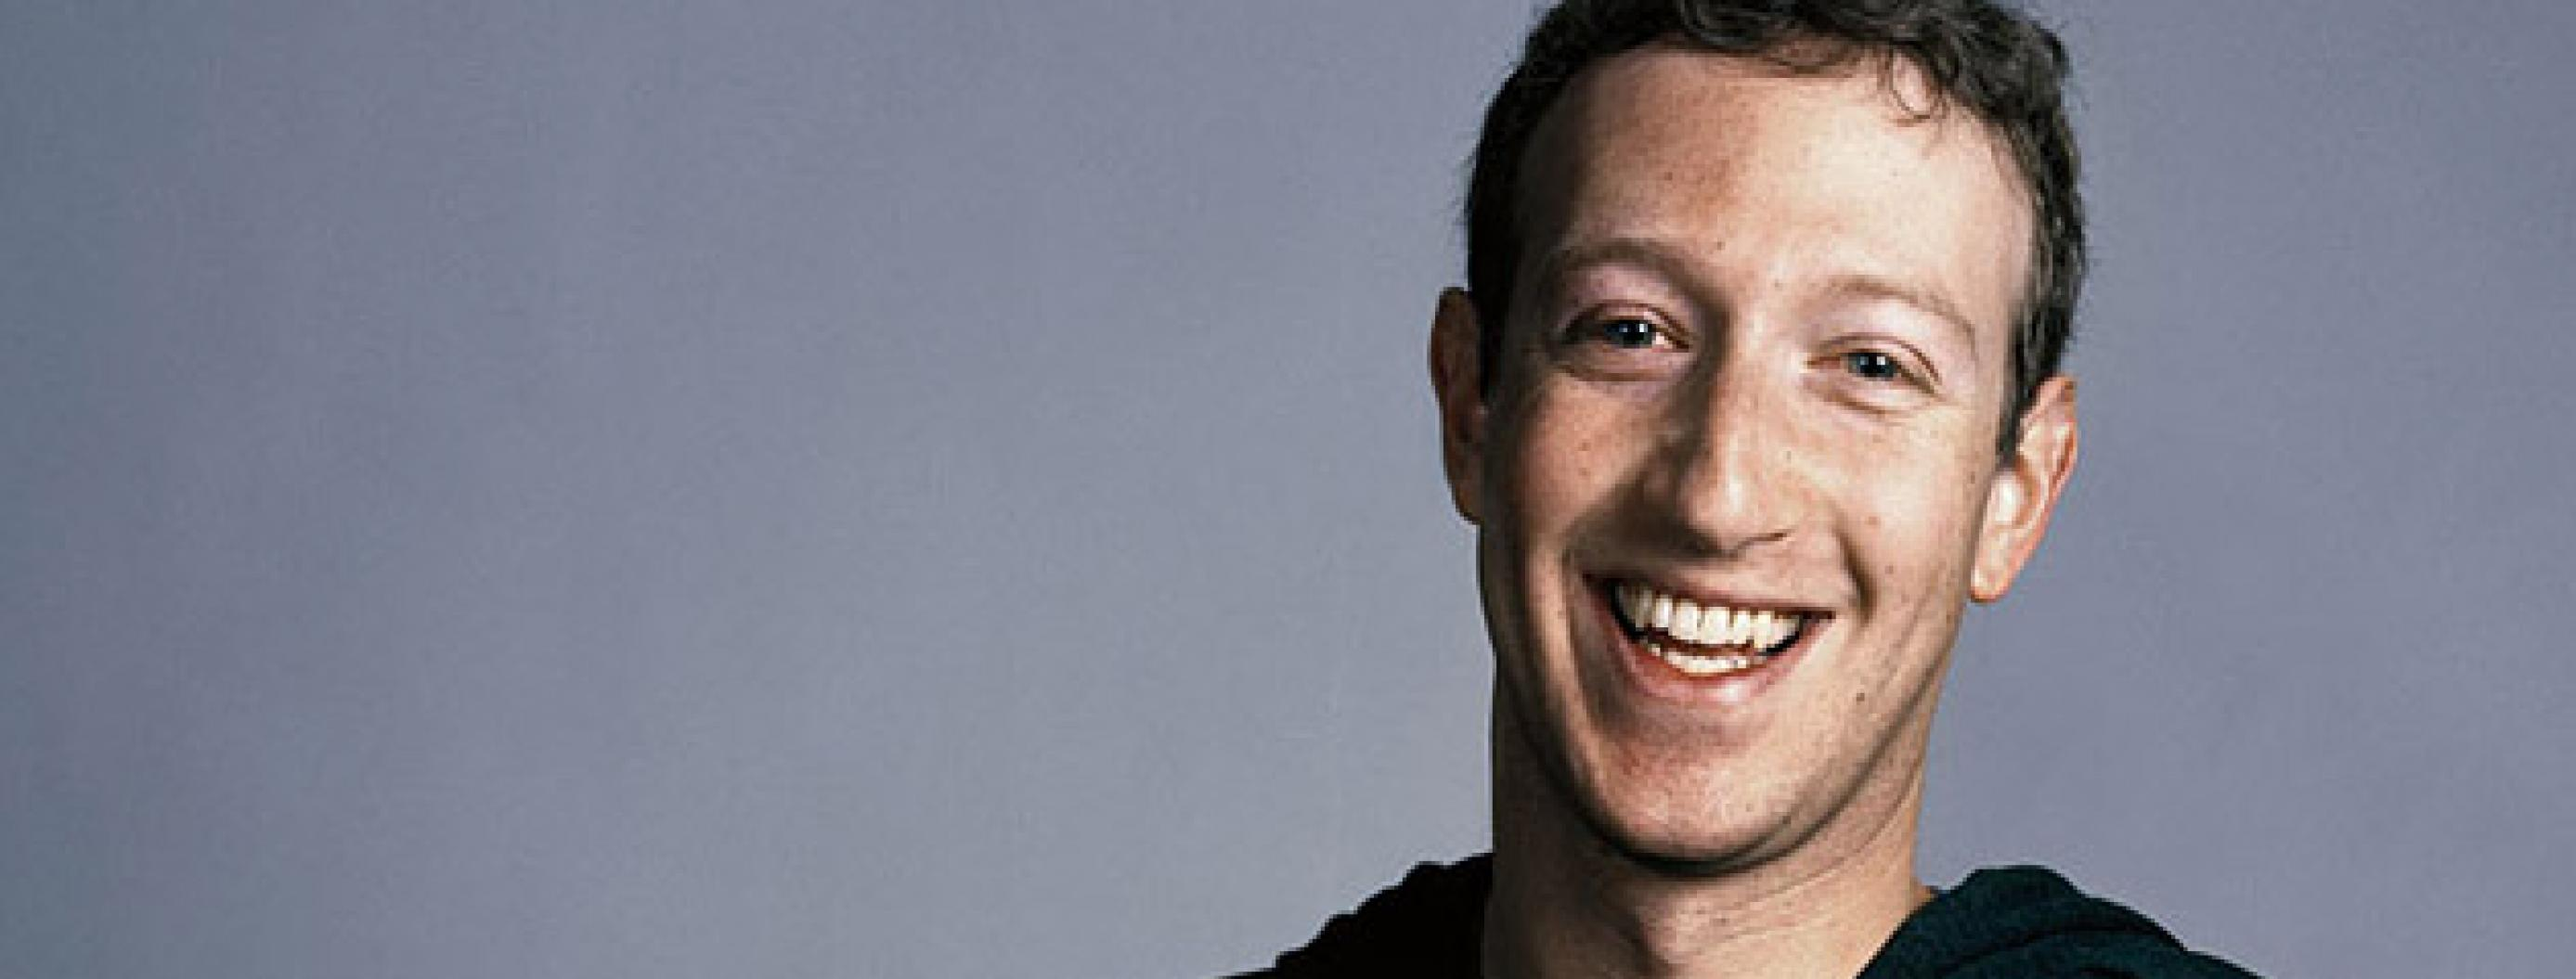 3 Productivity Hacks Zuckerberg, Gates, and Musk Live By